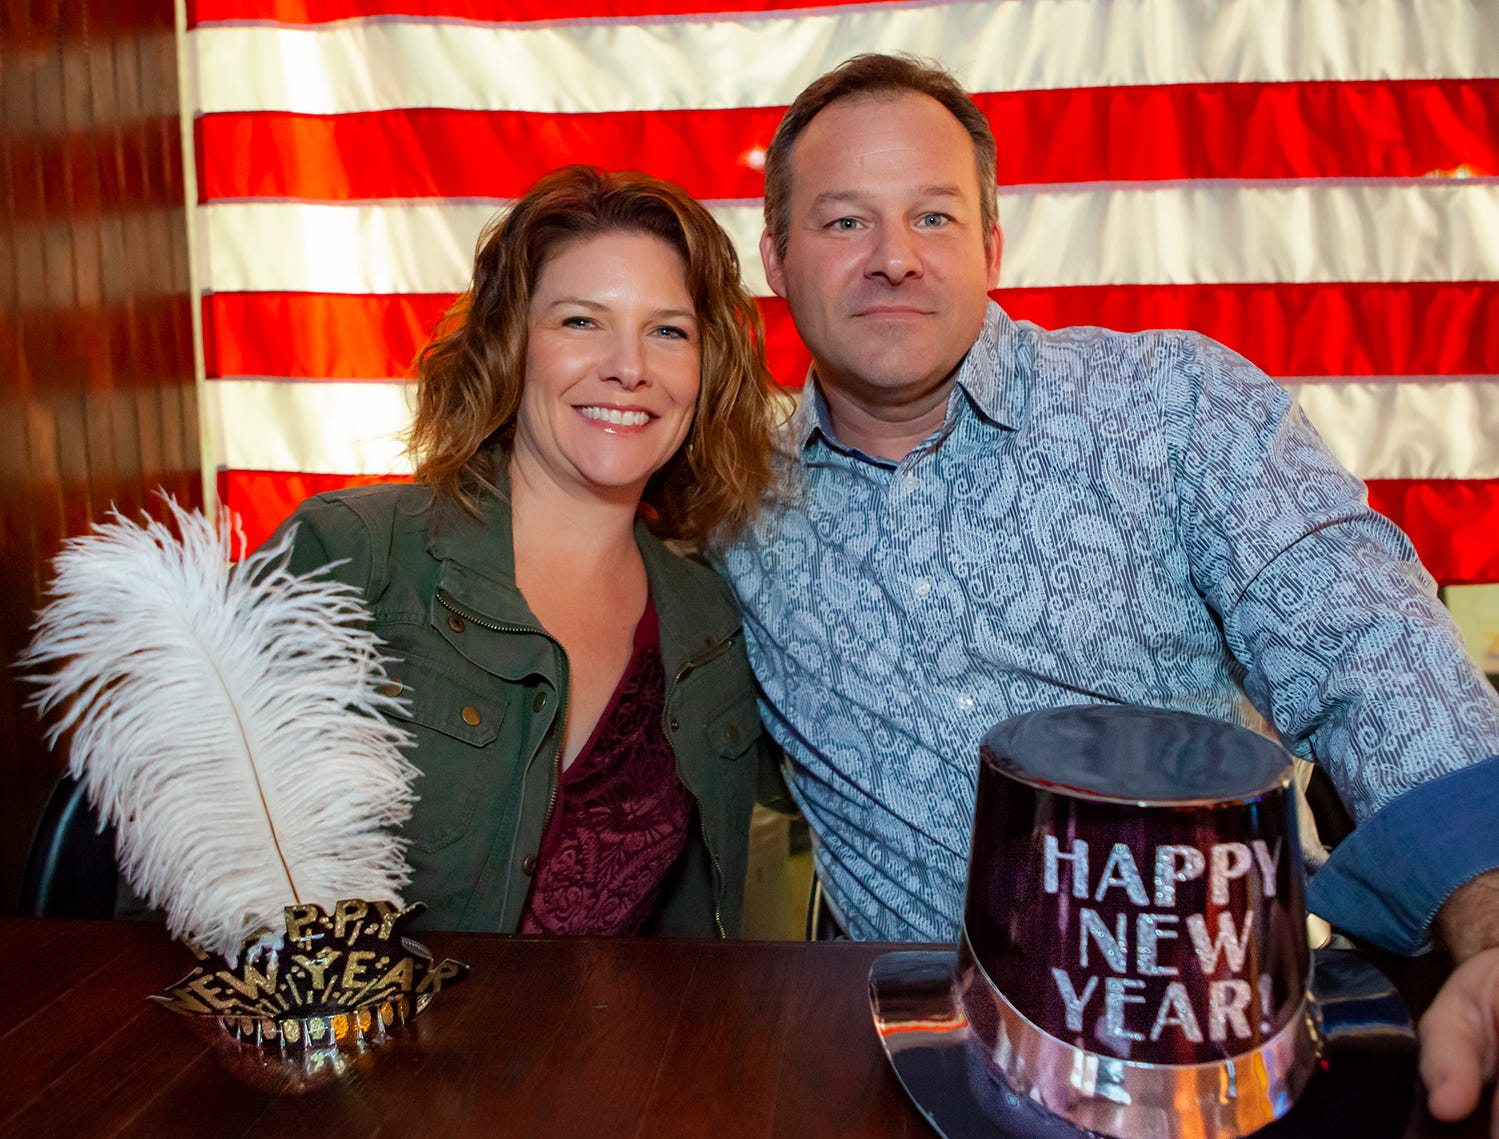 Amy and Craig Snider at the Hank's Honky Tonk New Year's Eve Party in Murfreesboro.